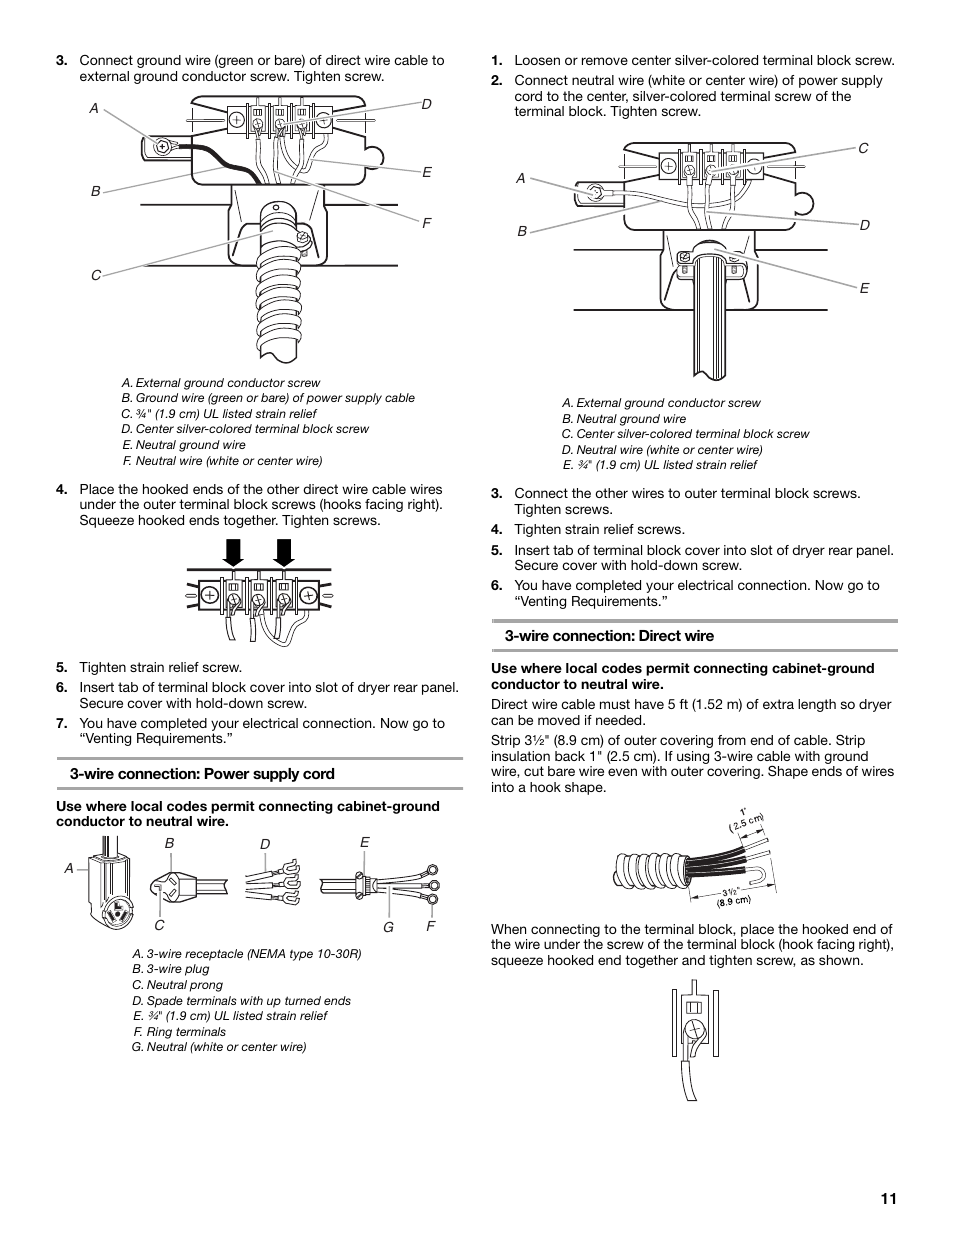 Whirlpool Duet Gew9250pw0 User Manual Page 11 28 Also For Nema 10 30r Wiring Diagram Gew9250pl0